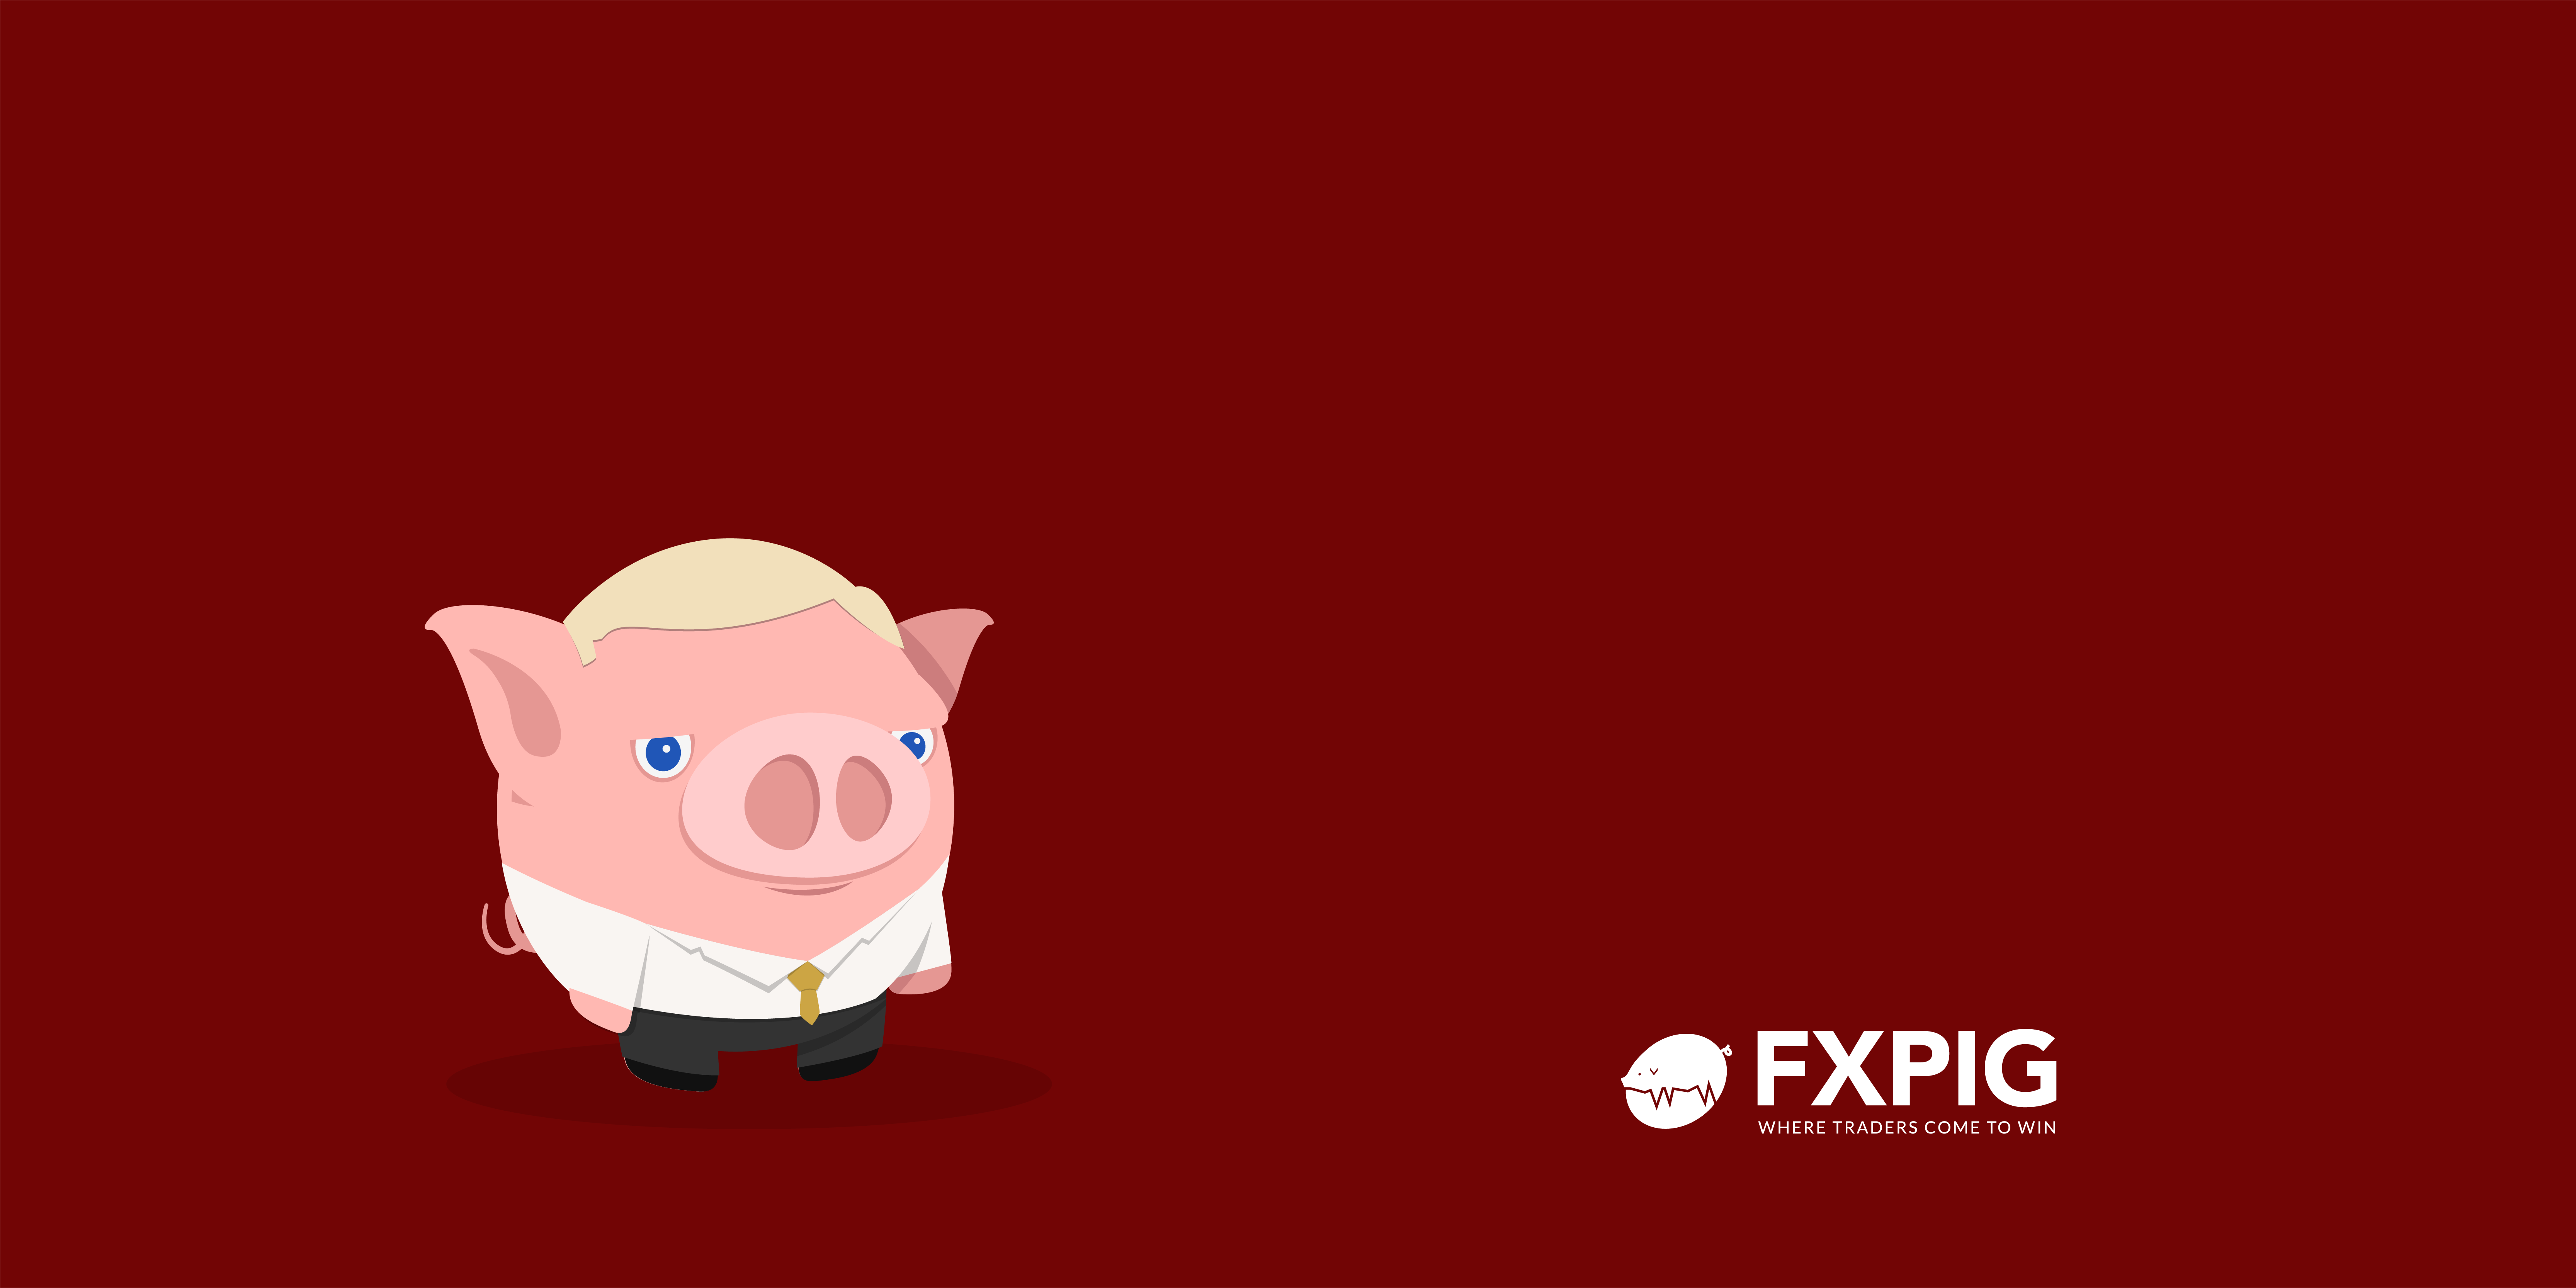 FOREX_Ed-Seykota_Trading-quote_FXPIG